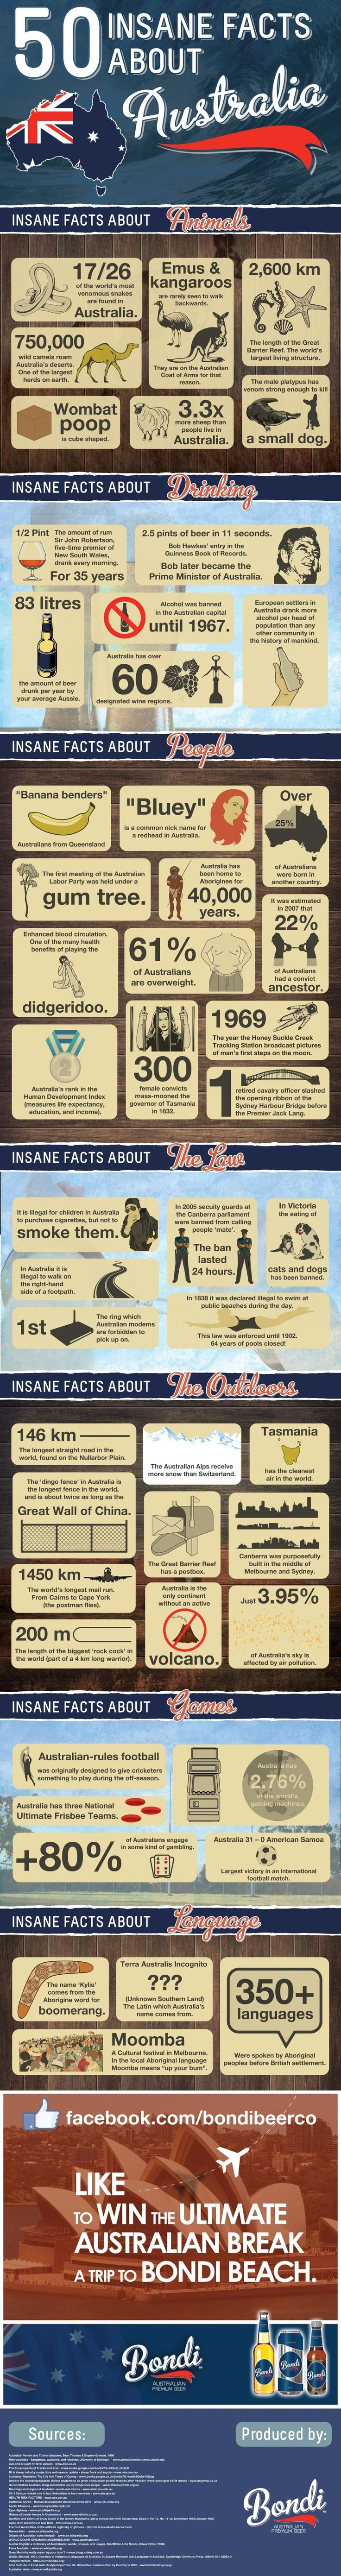 50-insane-facts-about-Australia